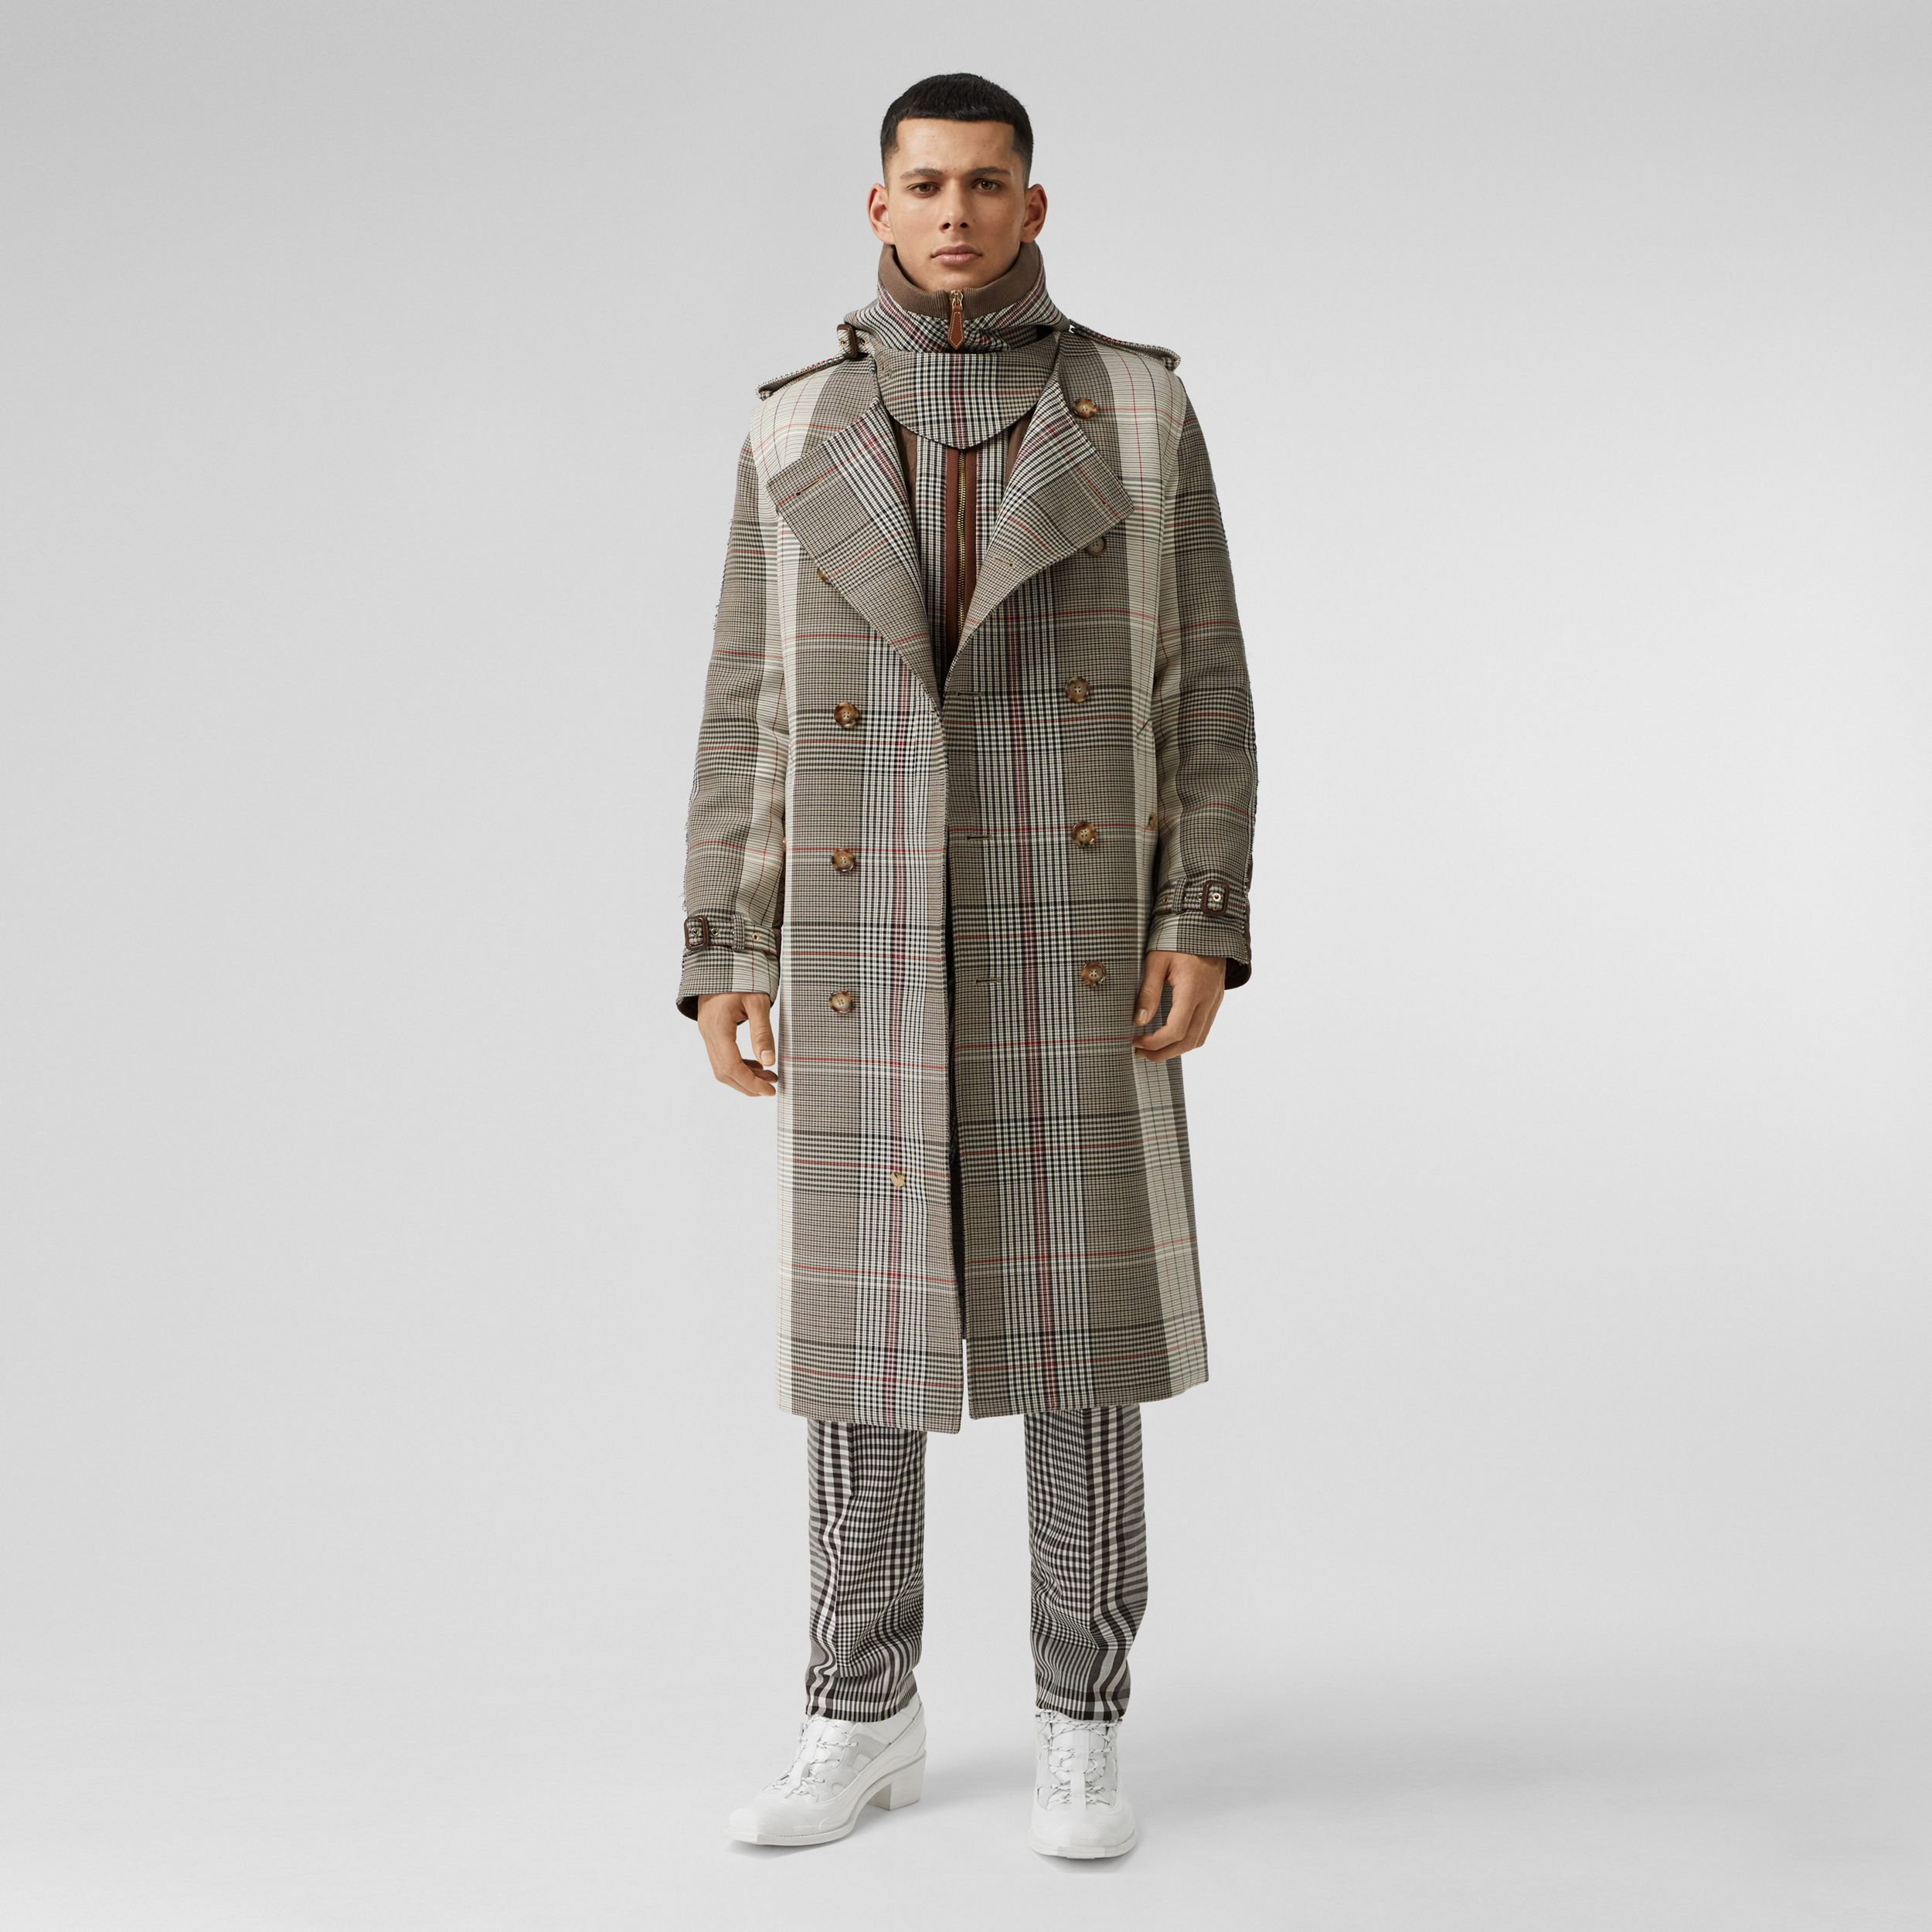 Quilted Panel Check Wool Cotton Trench Coat in Beige - Men | Burberry Hong Kong S.A.R. - 1